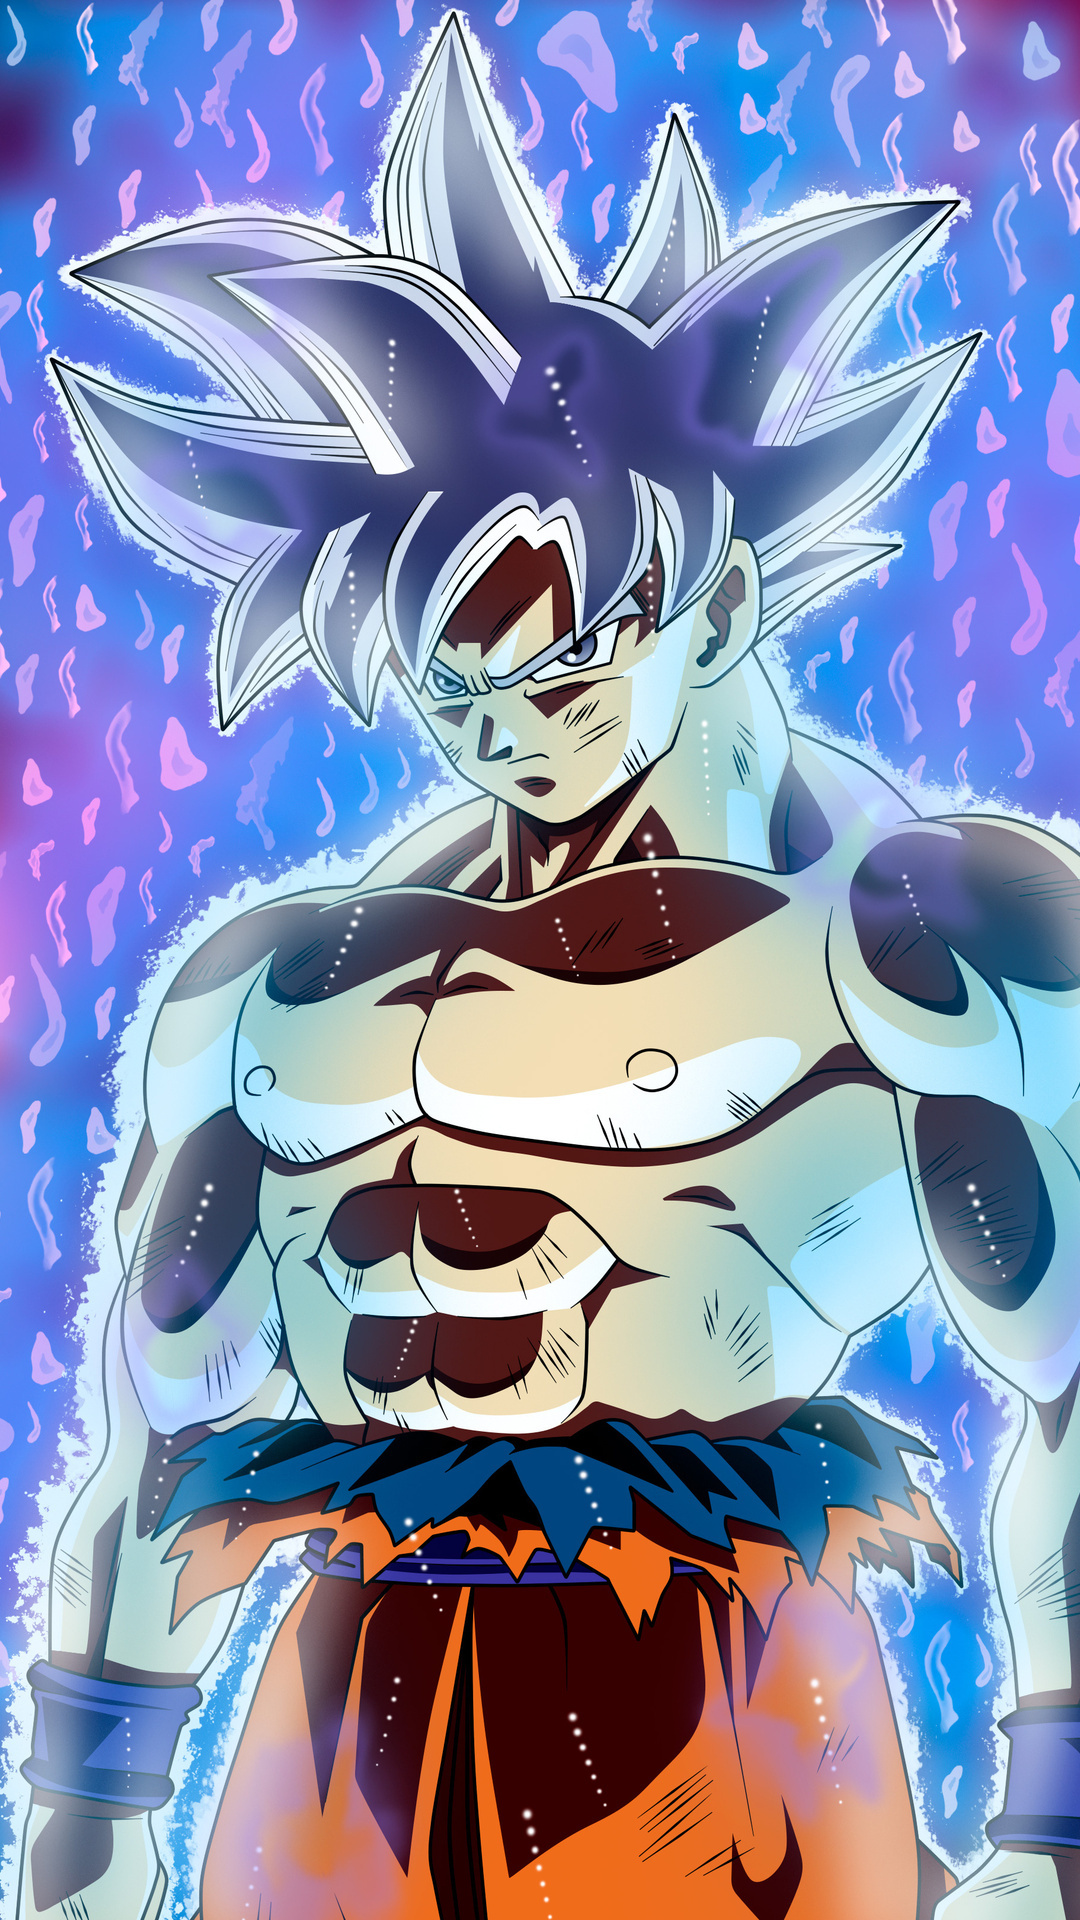 goku-migatte-no-gokui-perfecto-ultra-instinct-dragon-ball-wr.jpg